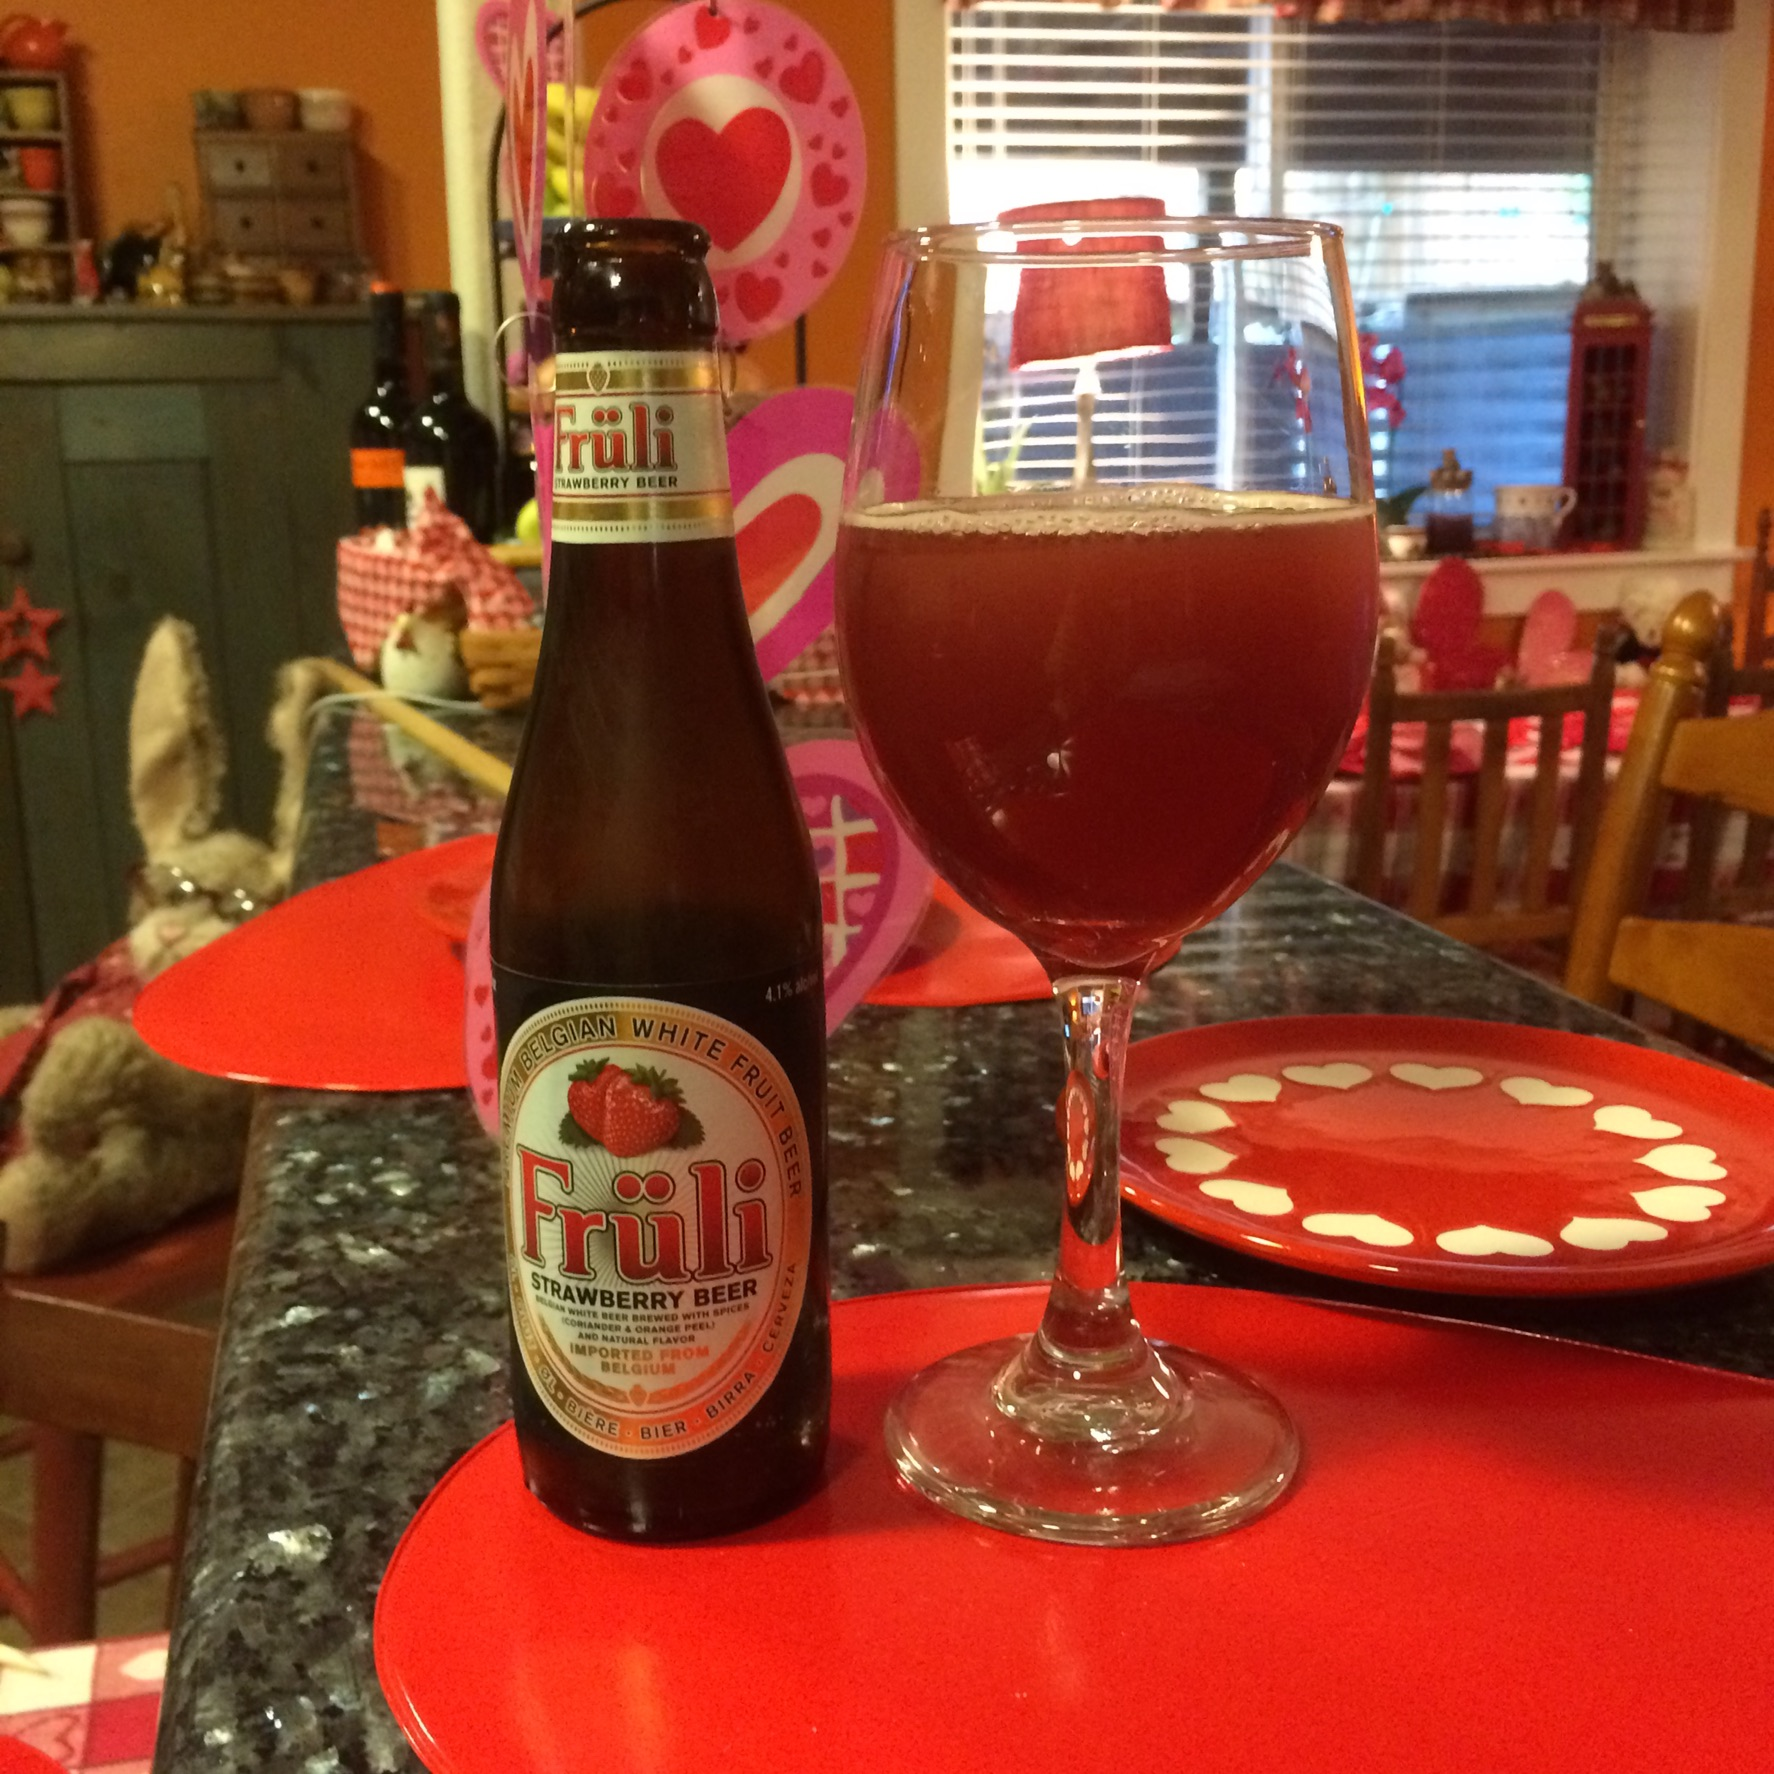 a perfect date for valentines day fruli strawberry beer photo by jean de ieso